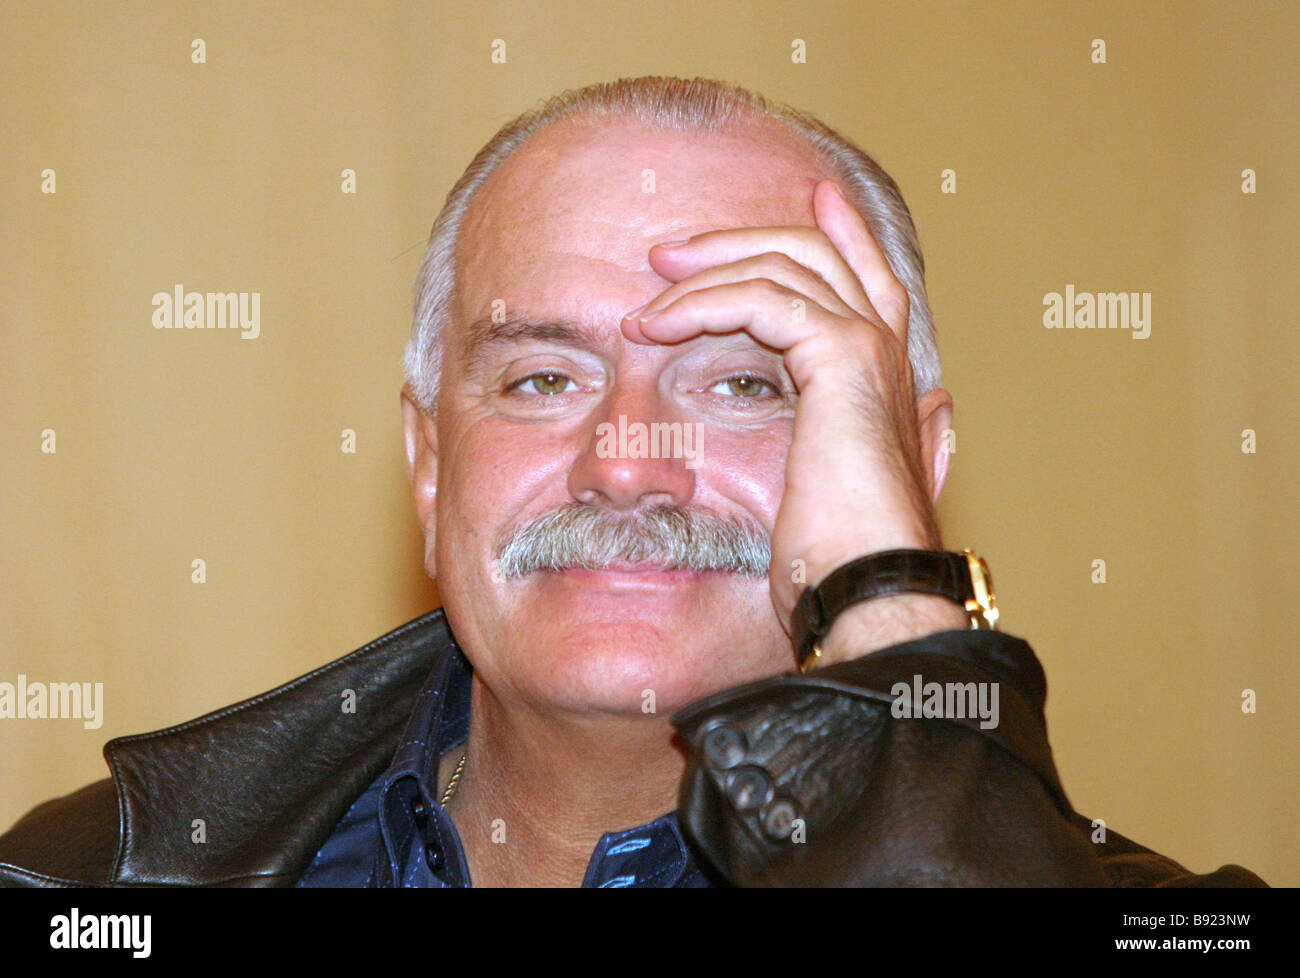 Children Mikhalkov: the talented family of a famous director